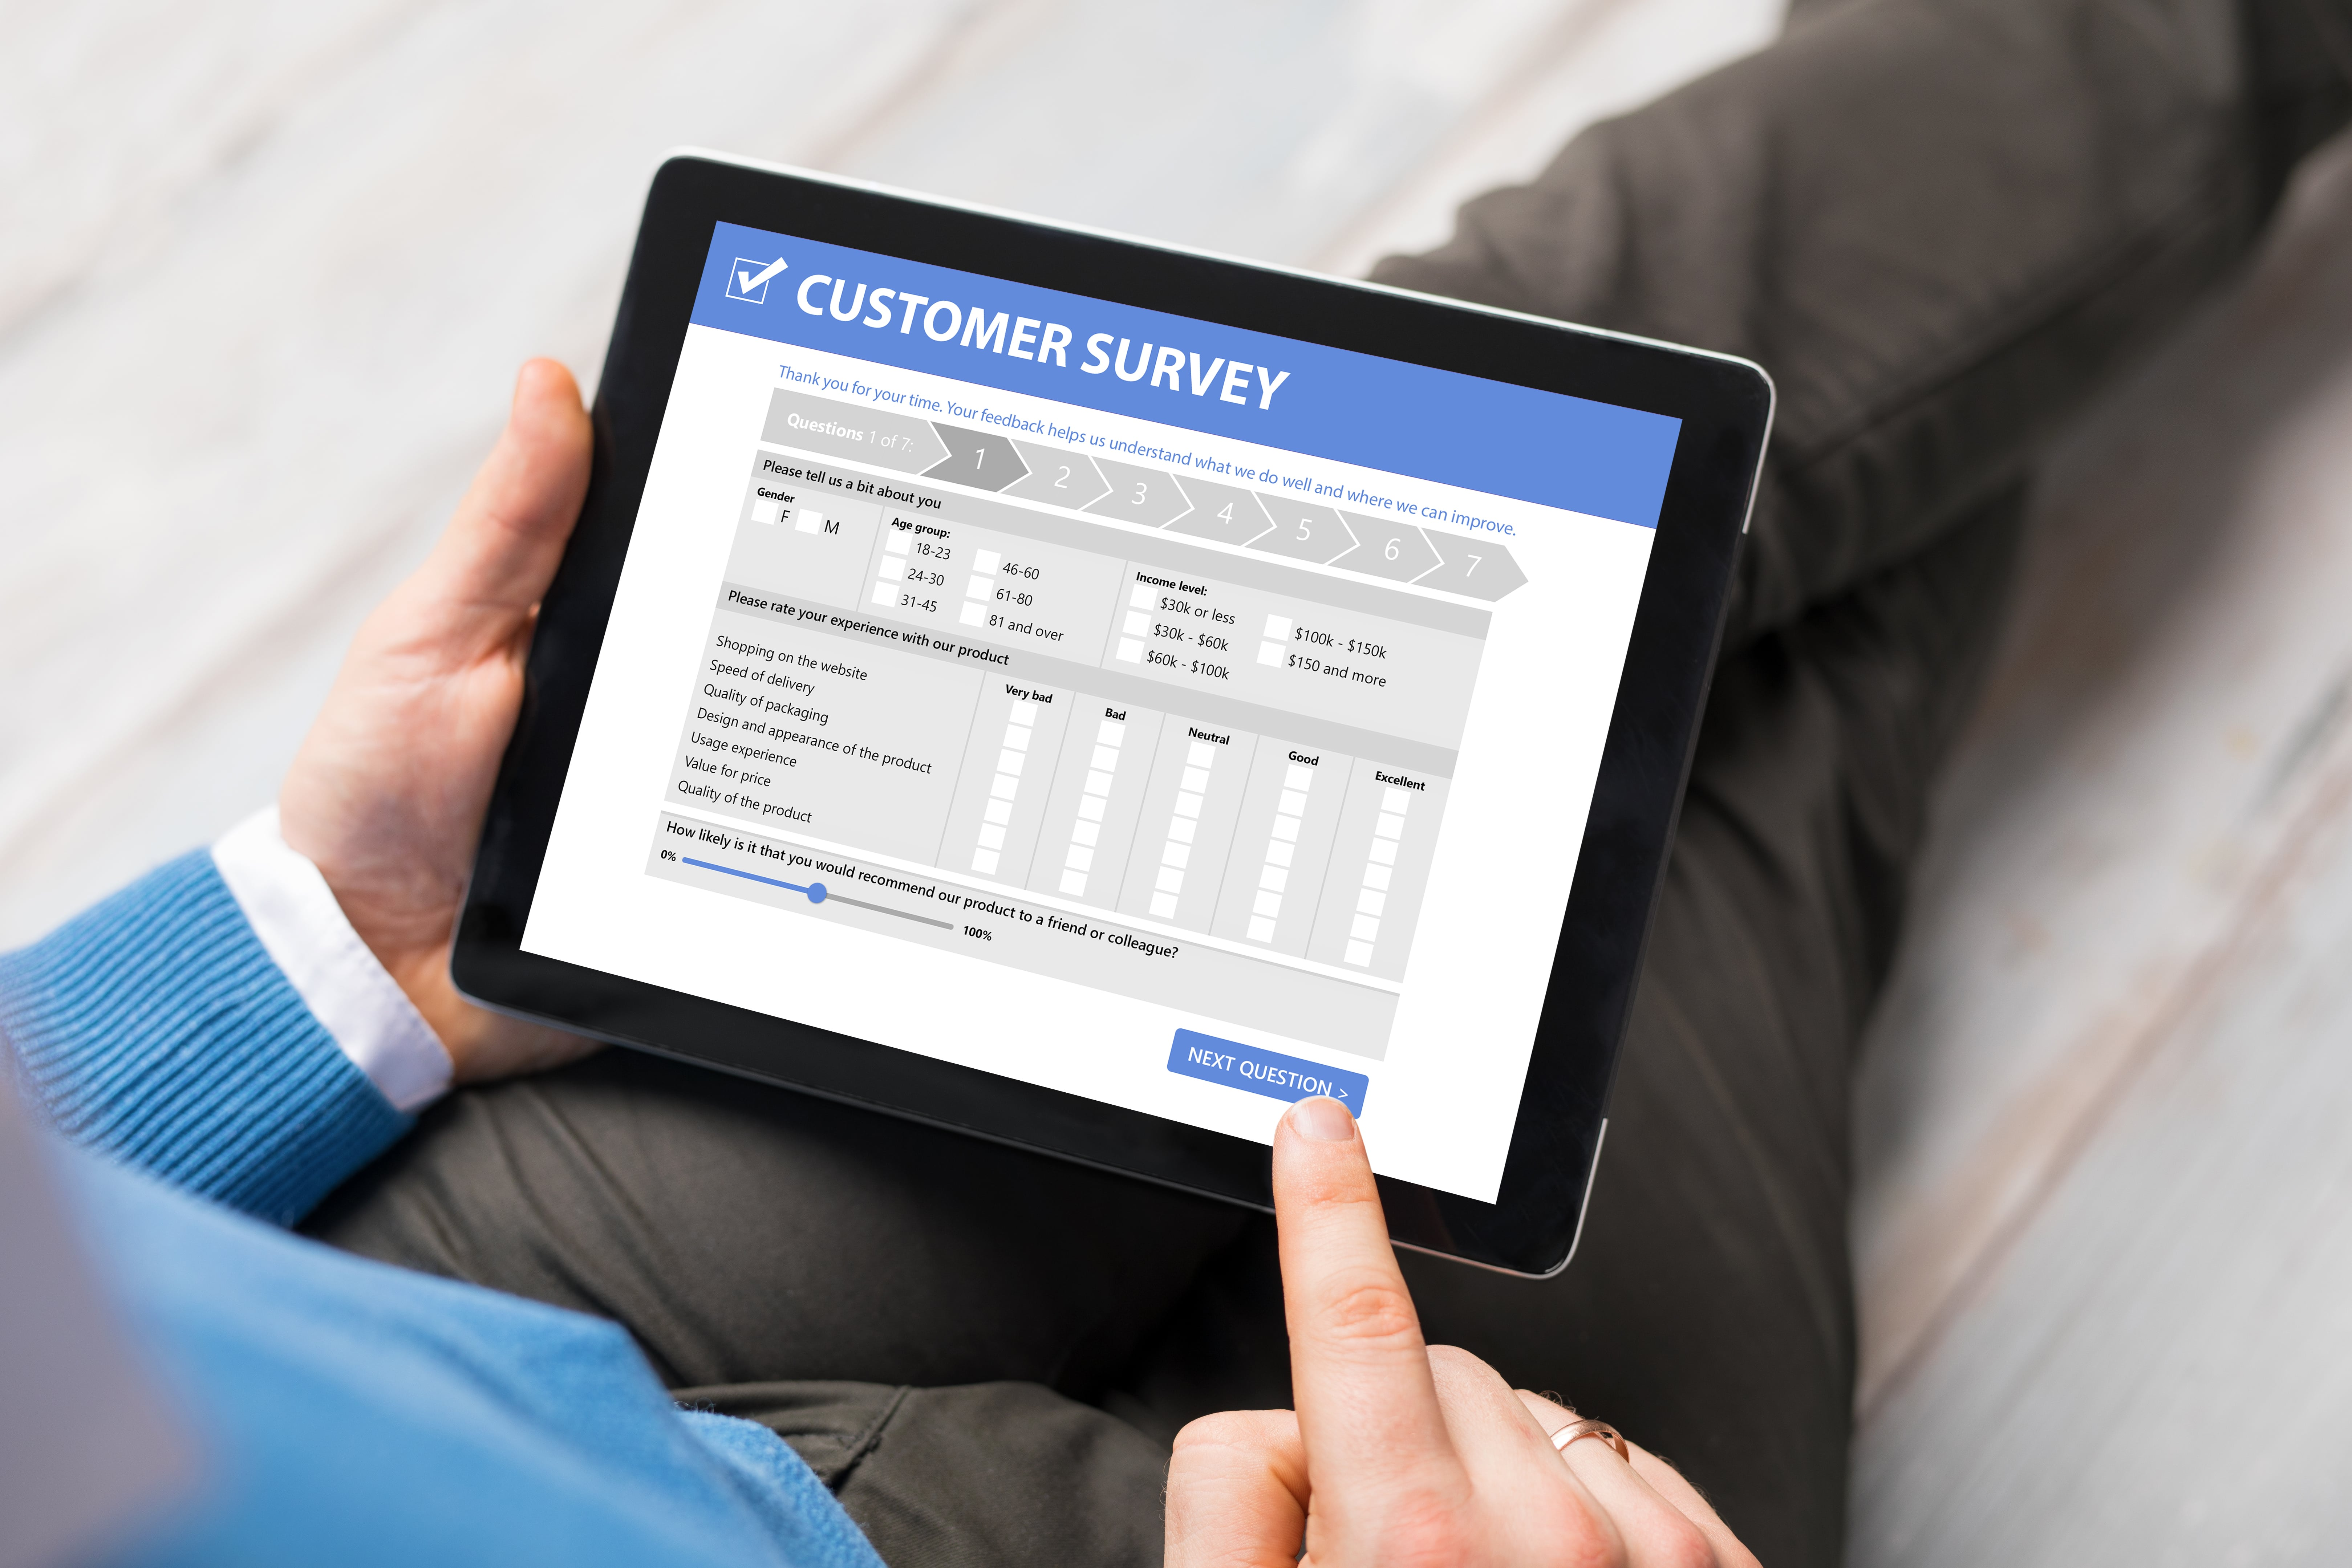 Customer taking survey to rate his customer experience.